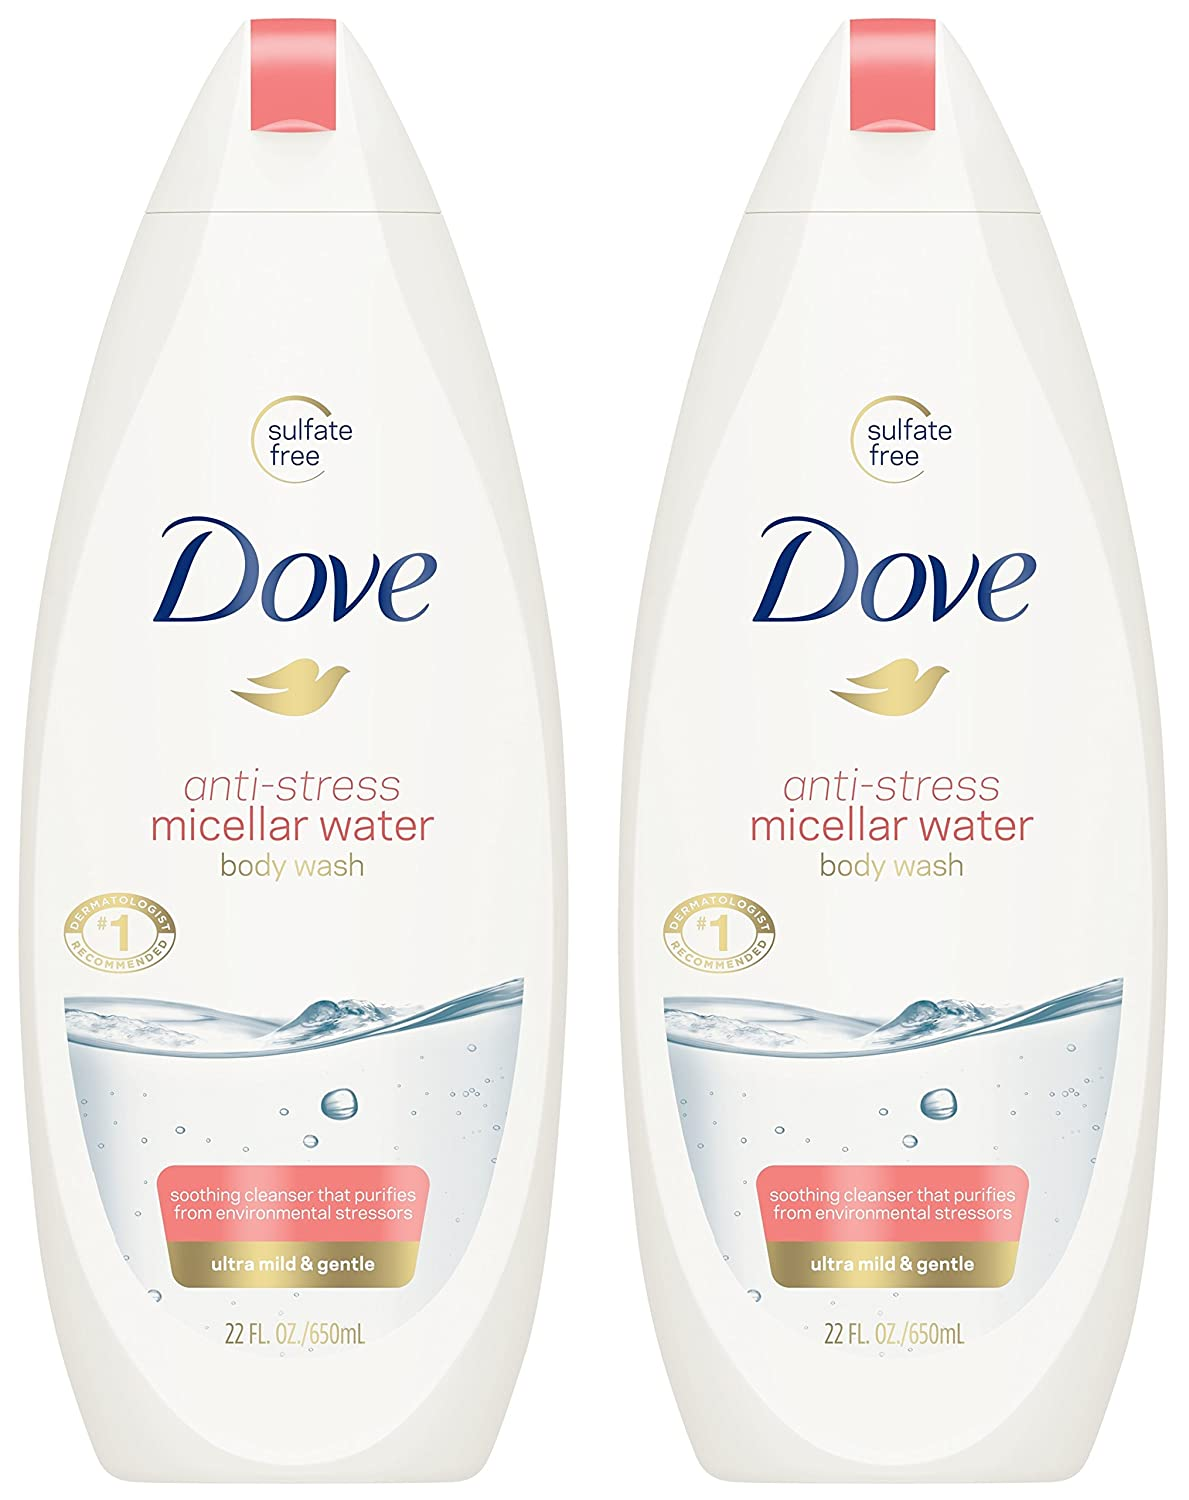 Dove Body Wash - Anti-Stress Micellar Water - Ultra Mild & Gentle - Sulfate Free - Net Wt. 22 FL OZ (650 mL) Per Bottle - Pack of 2 Bottles